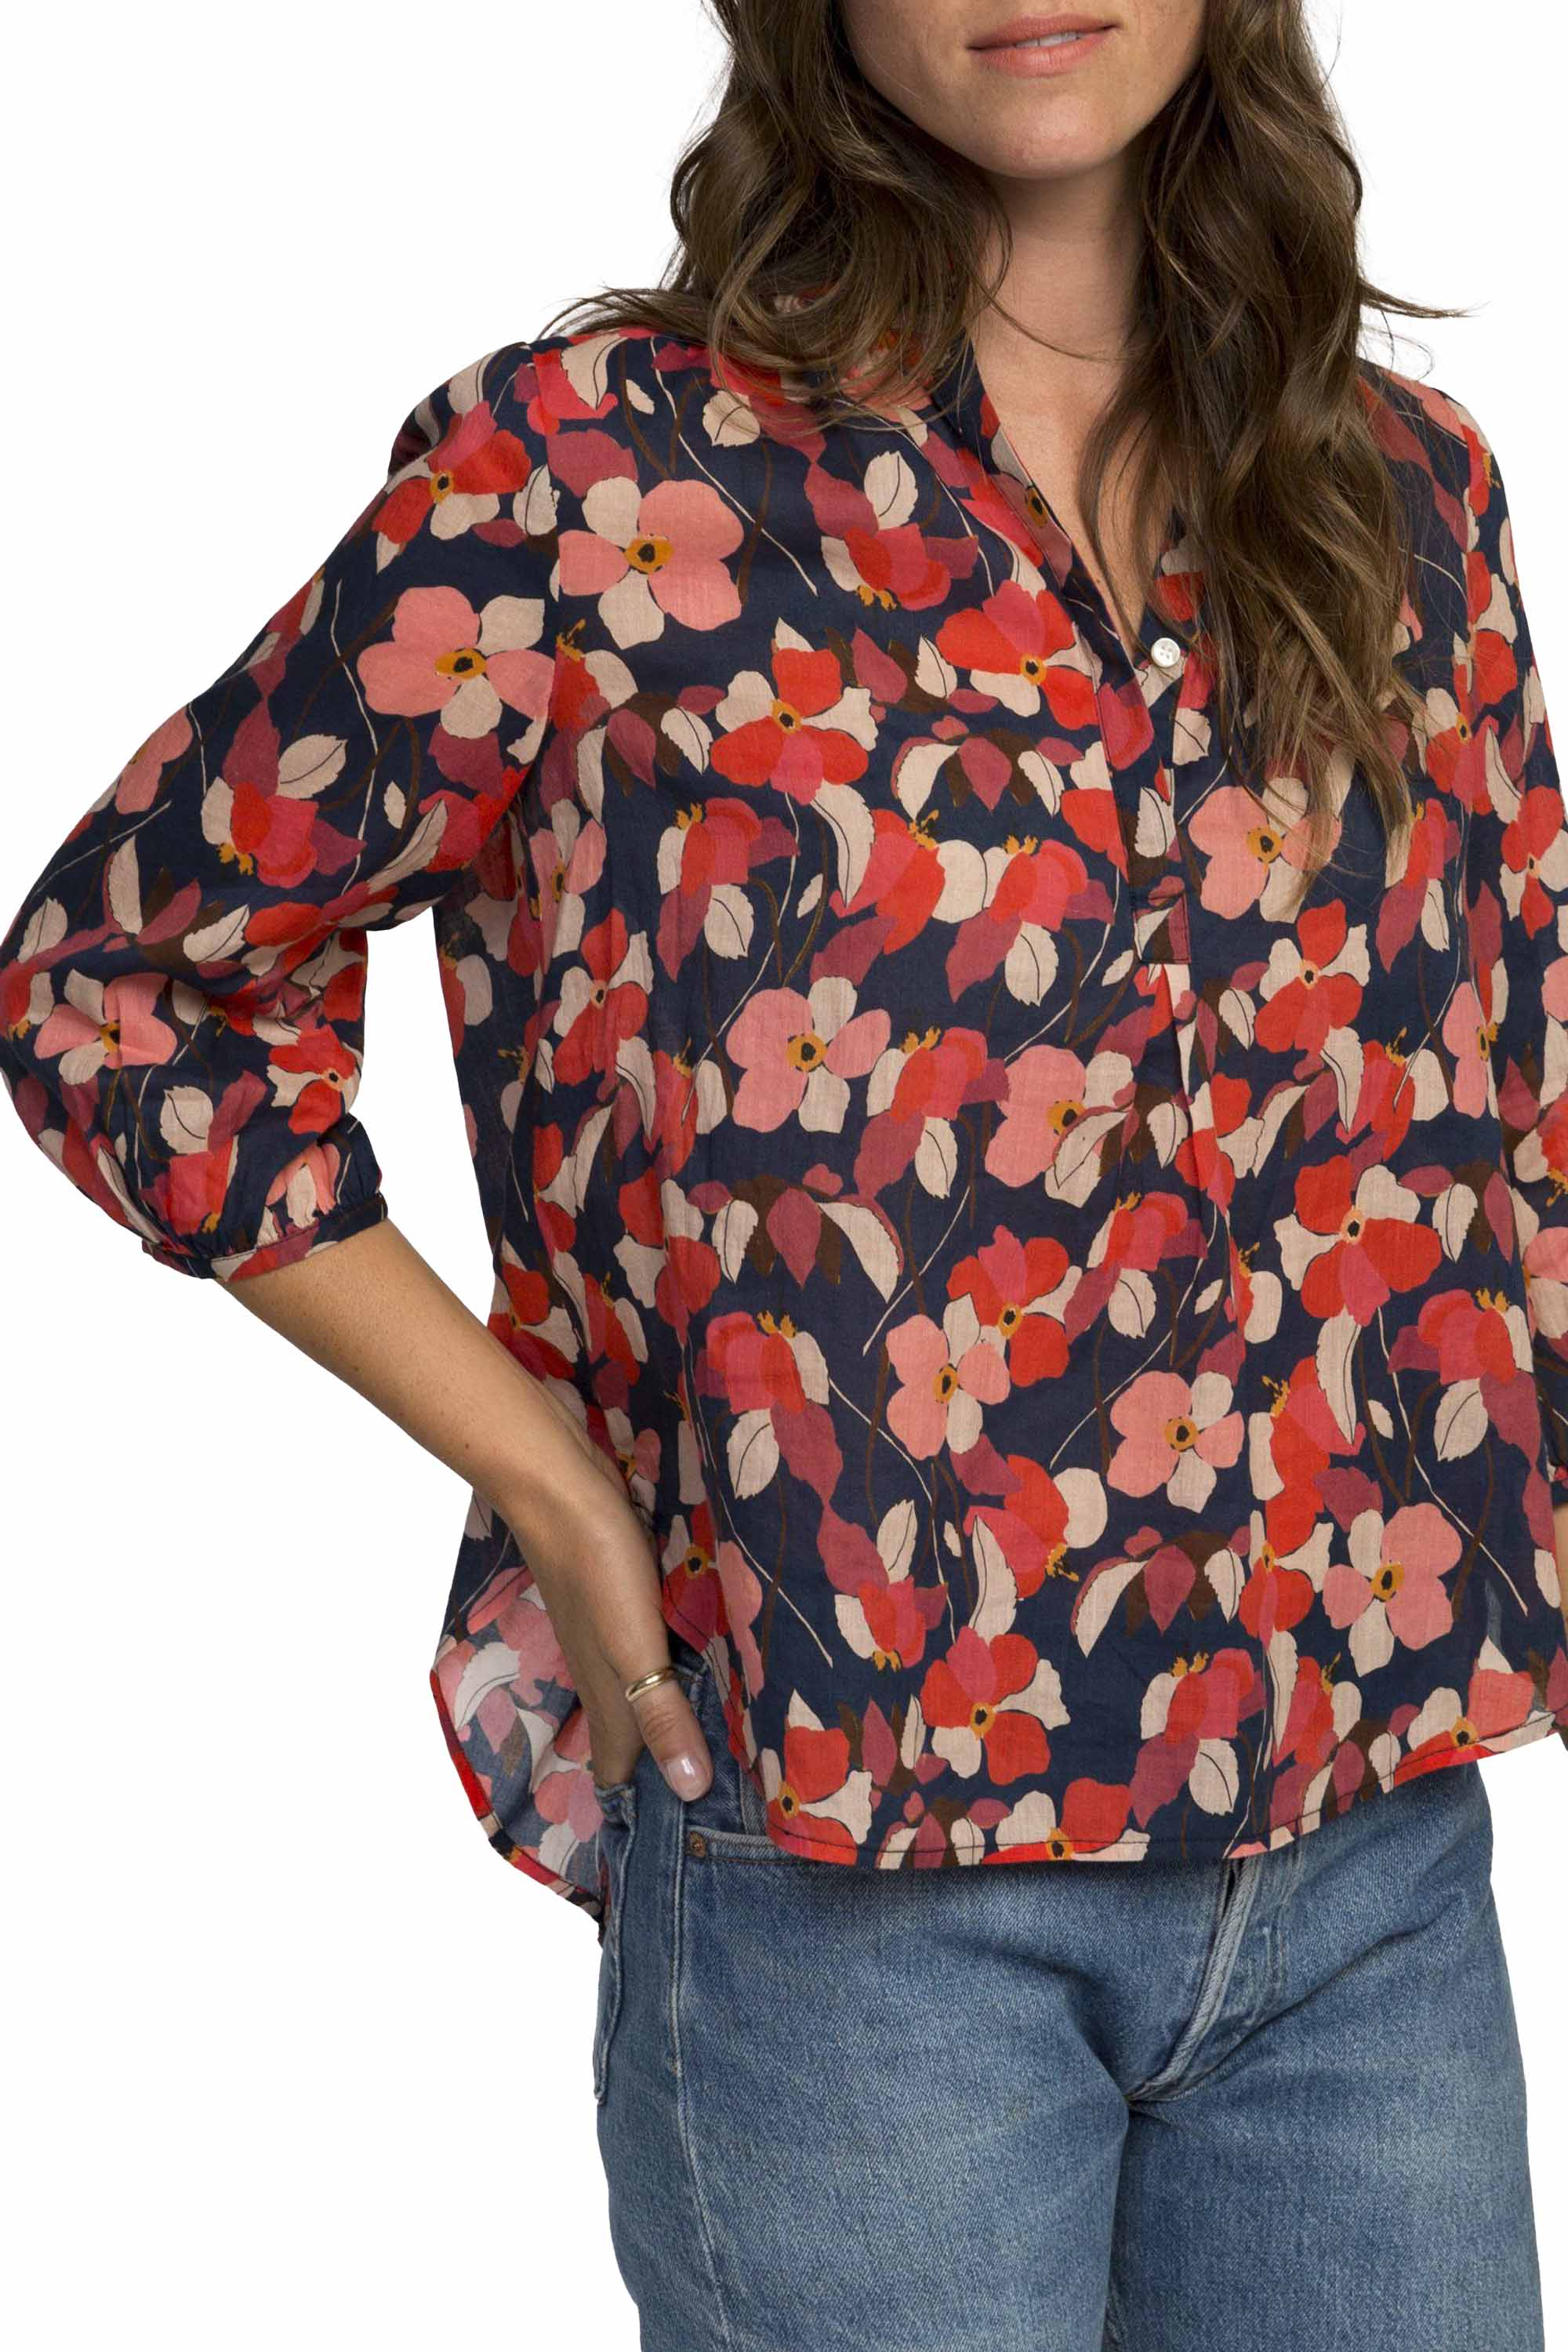 Sara henley shirt NAVY RED FLORAL by Trovata - 1